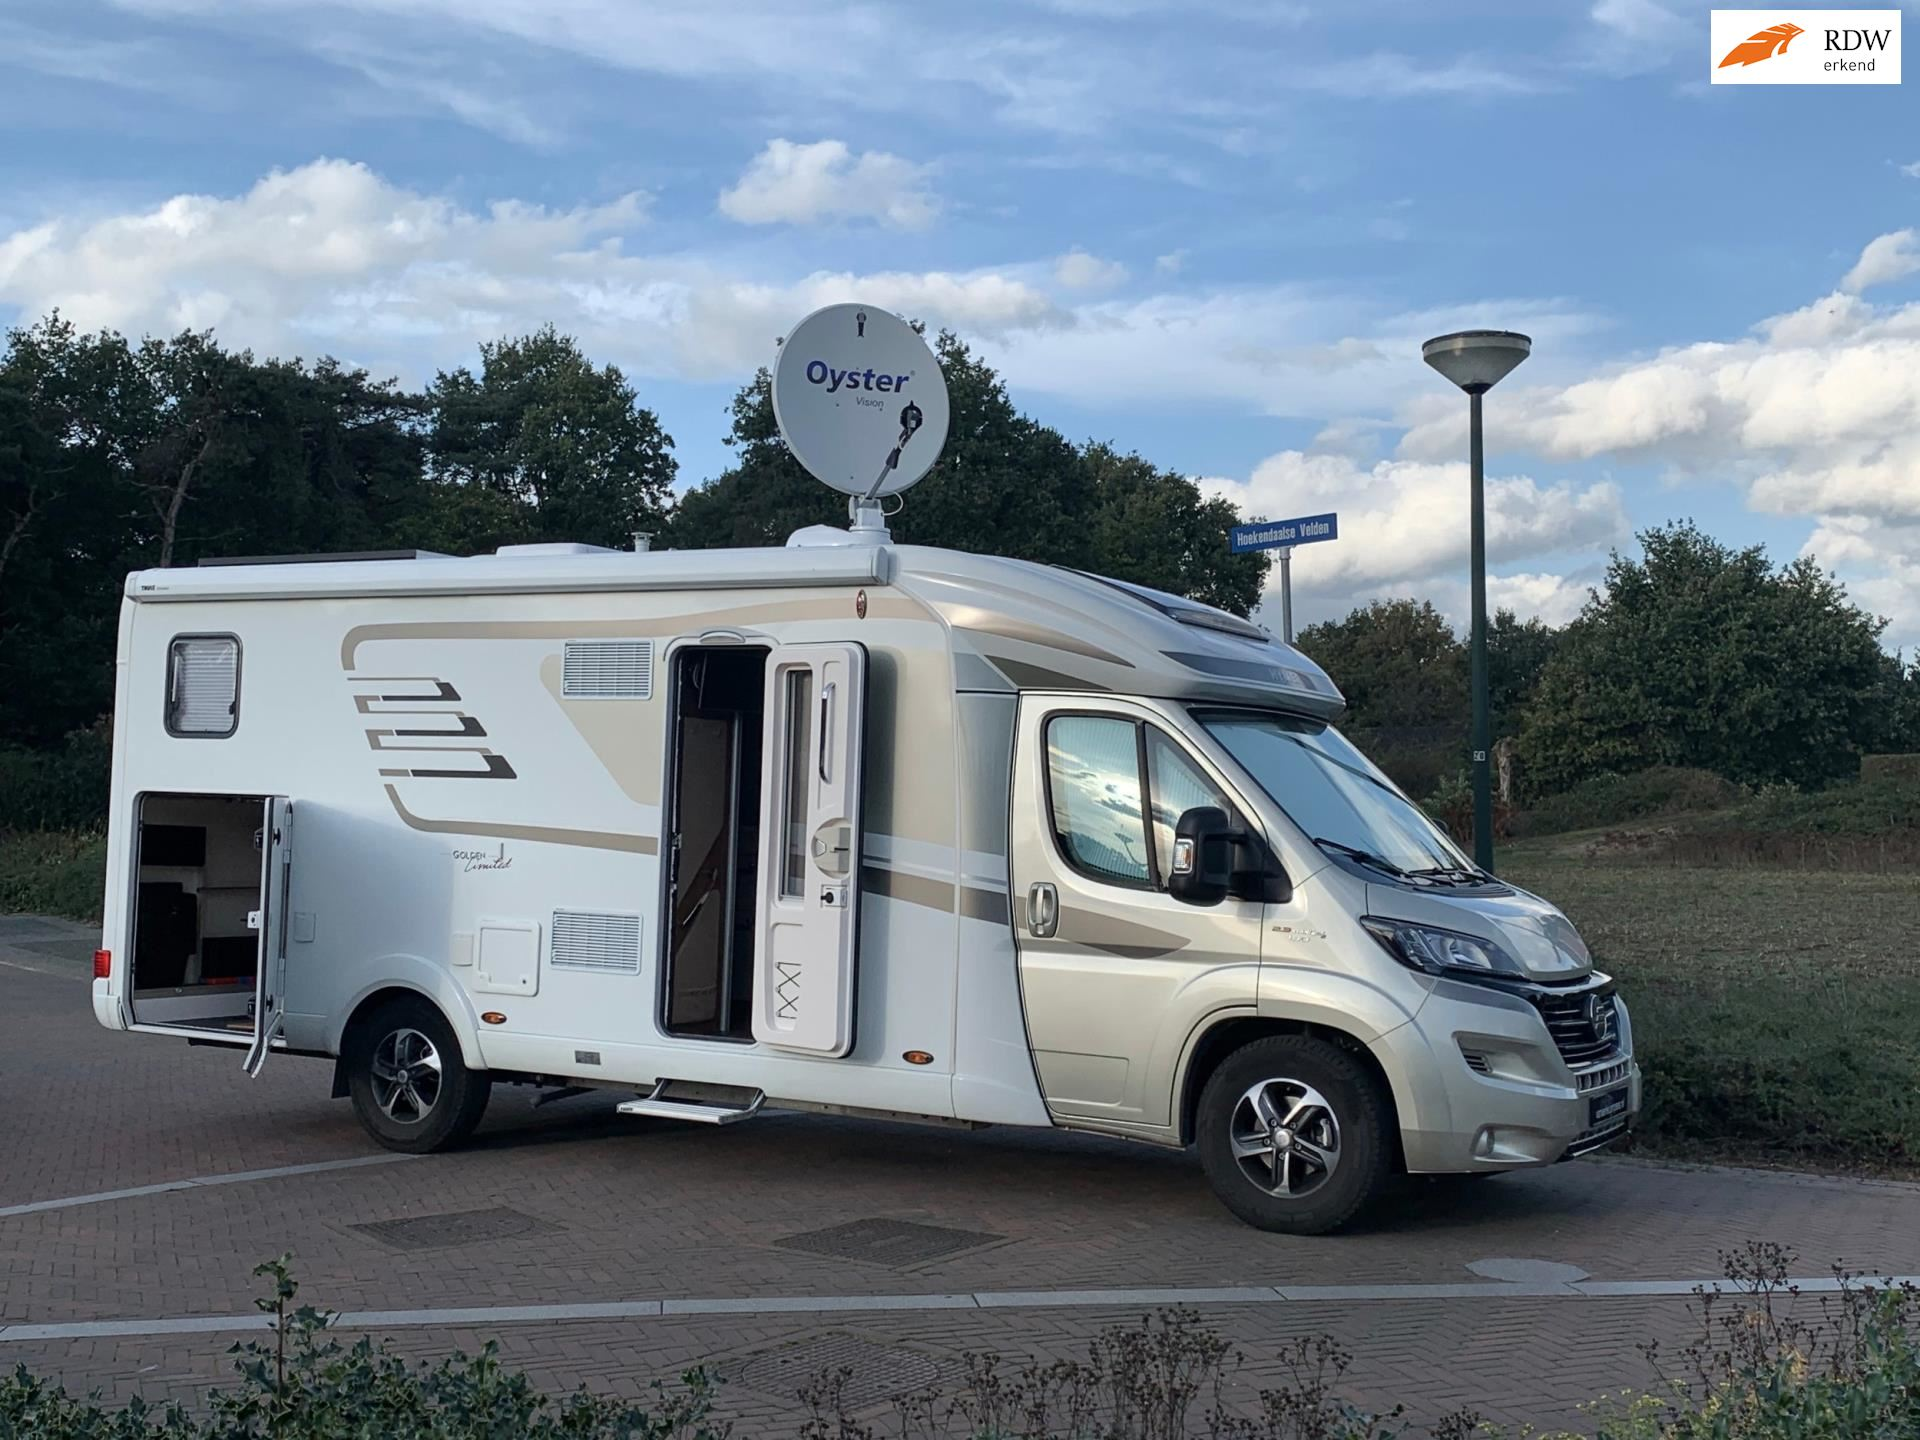 Hymer T 678 Golden Limited-Enkele bedden-2017-1e eig-Bomvol occasion - Eric van Aerle Auto's